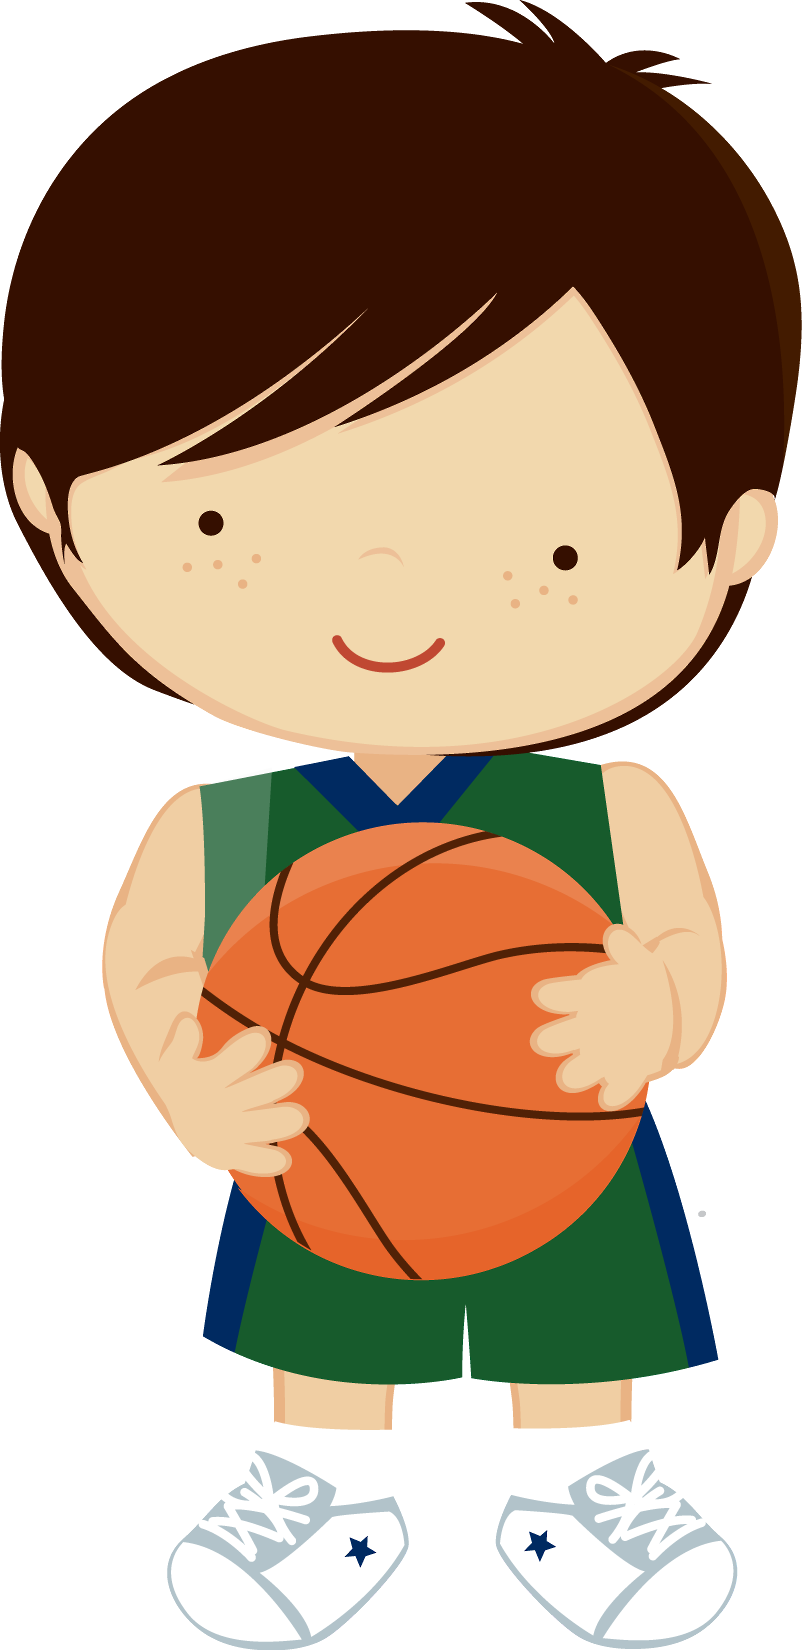 Zwd white star minus. Clipart baby basketball